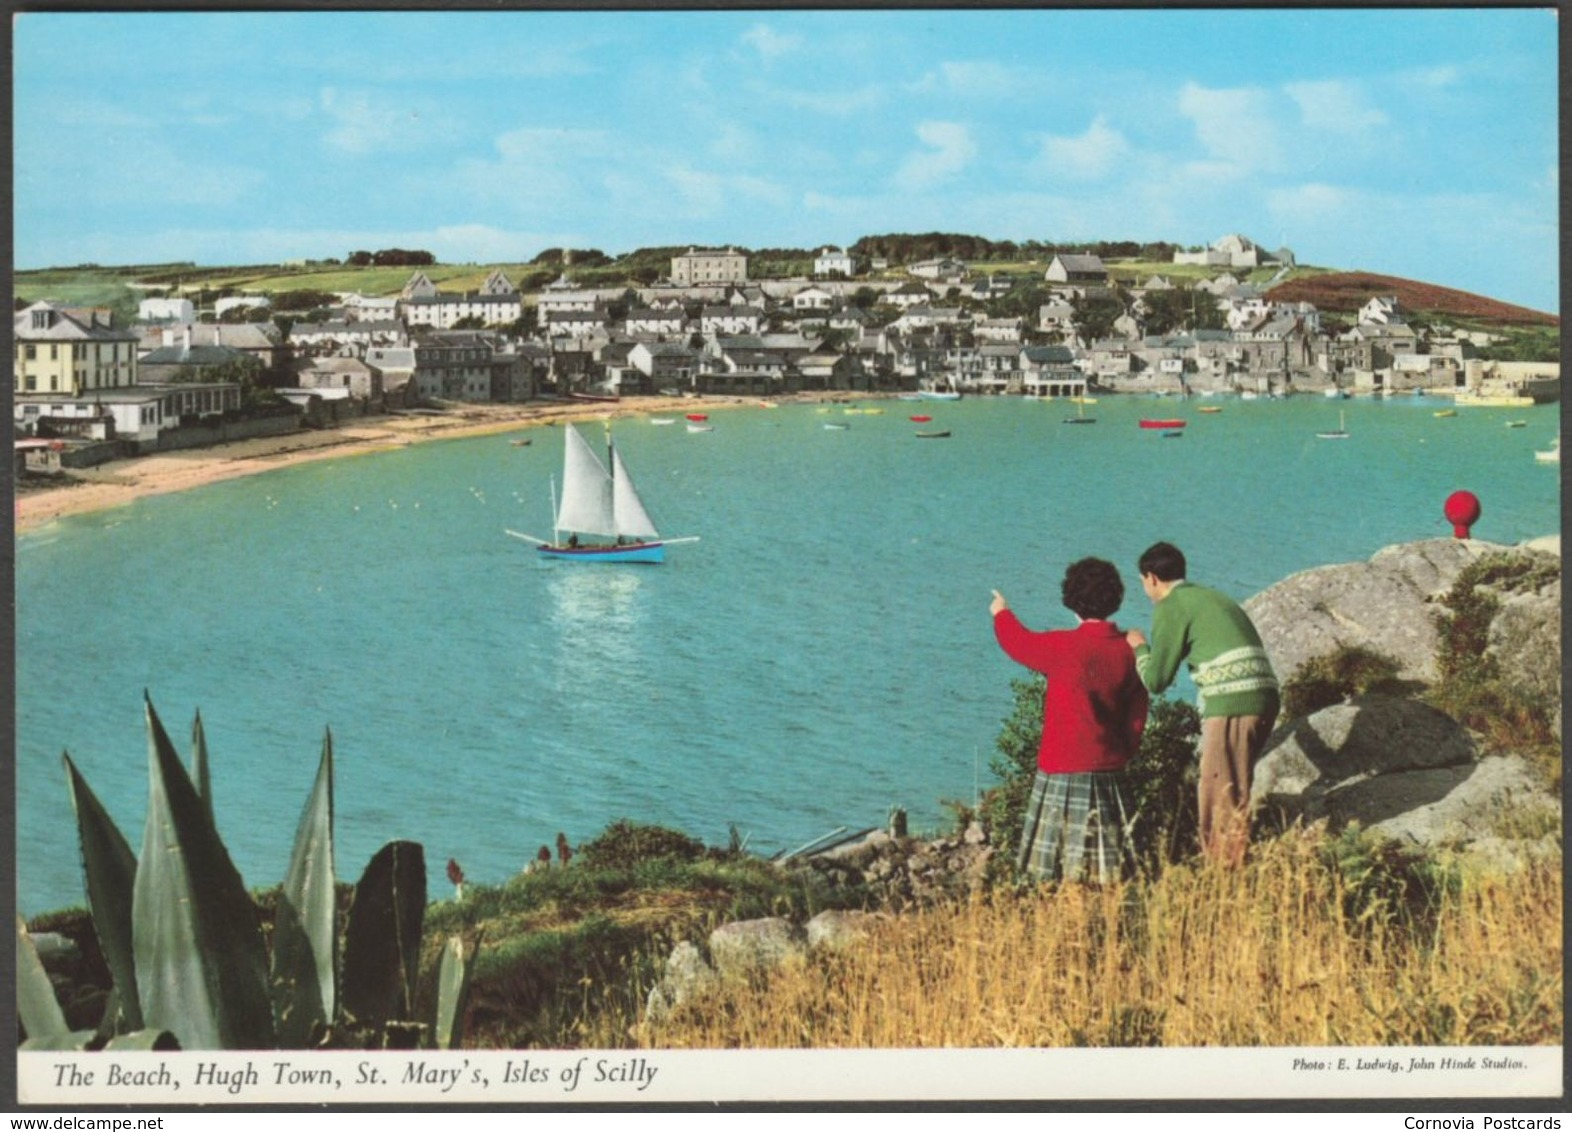 The Beach, Hugh Town, St Mary's, Isles Of Scilly, C.1970s - John Hinde Postcard - Scilly Isles